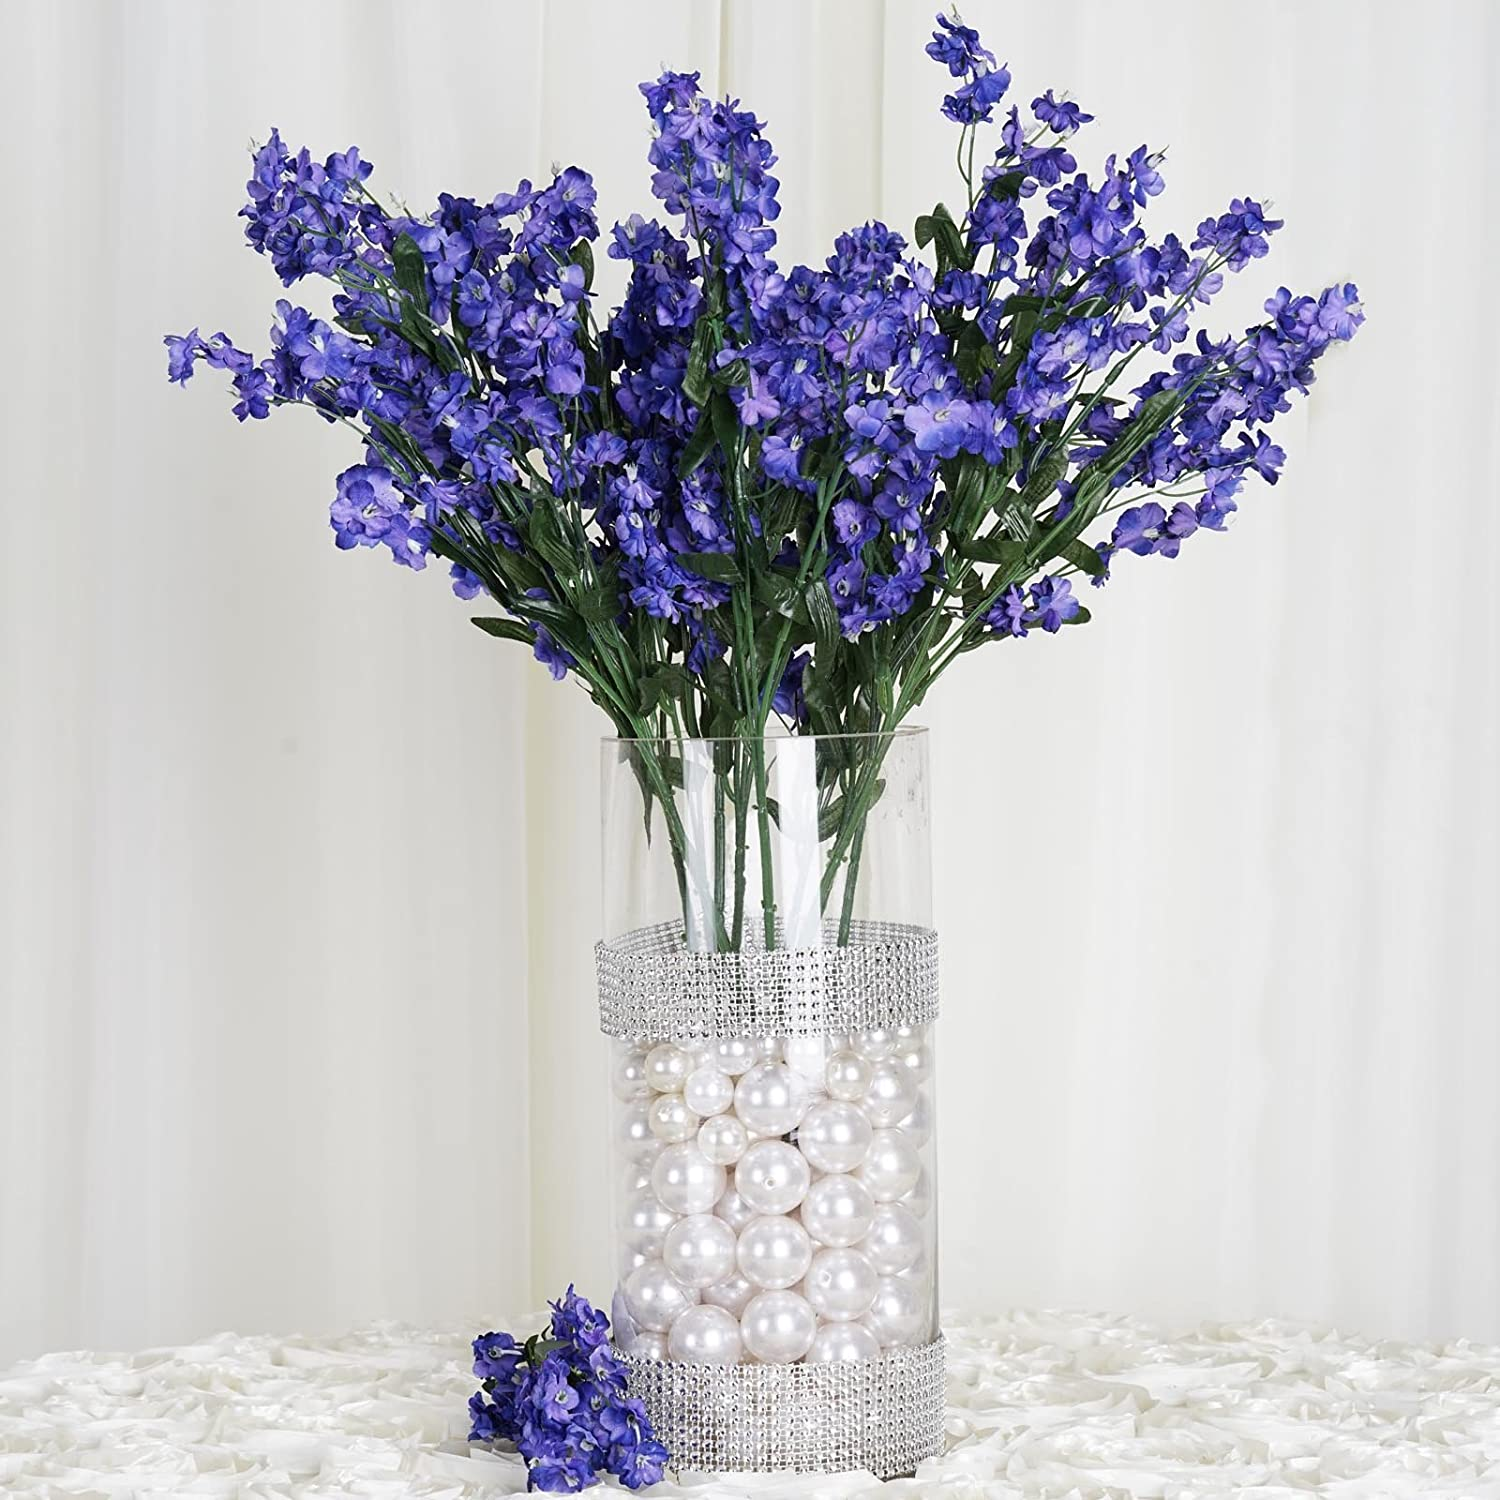 Amazon efavormart 12 bushes baby breath artificial filler amazon efavormart 12 bushes baby breath artificial filler flowers for diy wedding bouquets centerpieces party home decoration navy blue home izmirmasajfo